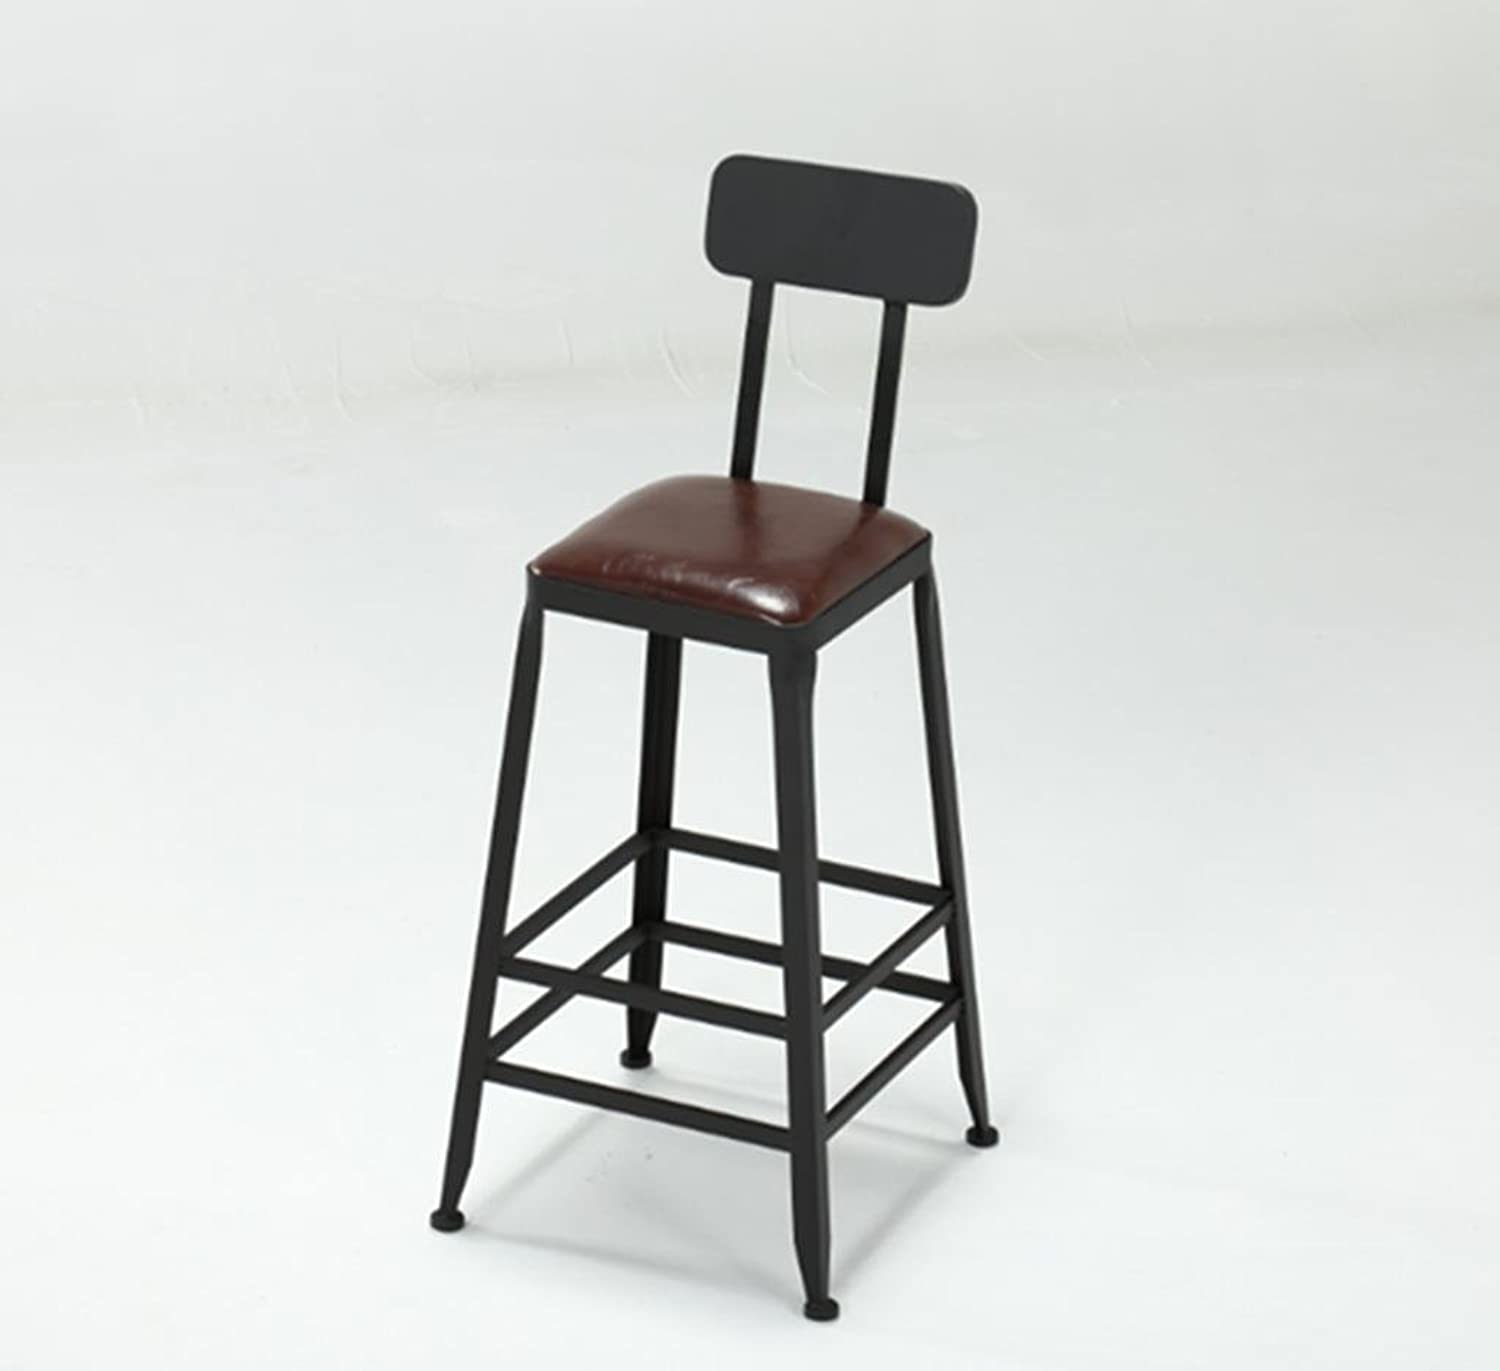 Retro Kitchen stools with Metal Legs High Stool Bar Stools Leather Seat Breakfast Bar, Height 45cm&65cm&75cm for Kitchen Counter Bar, 2, E,Simple